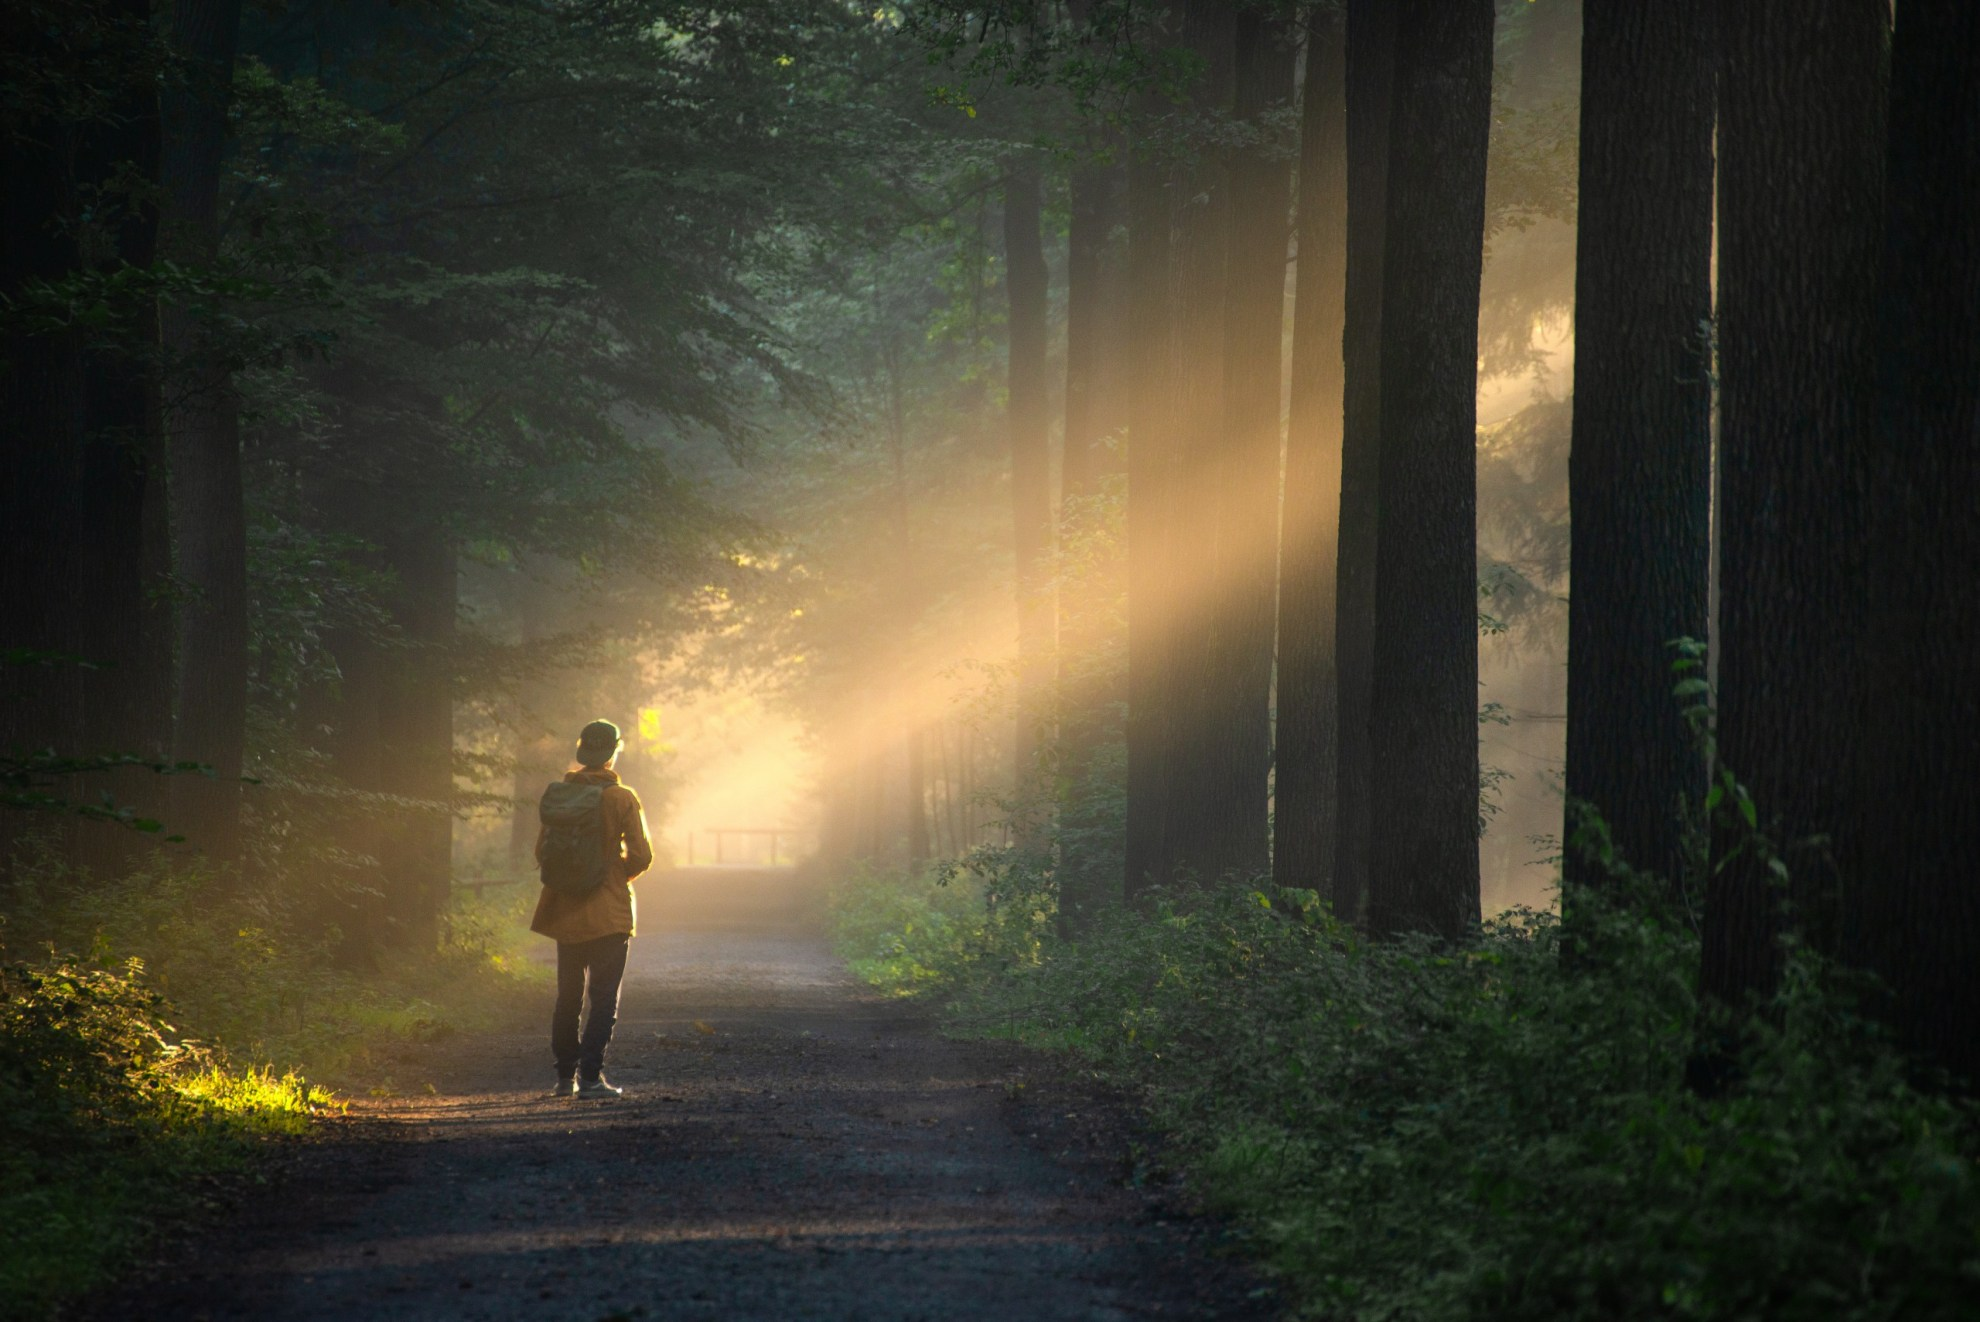 Person standing on a hiking path in the woods with sunlight pouring through the trees on them.